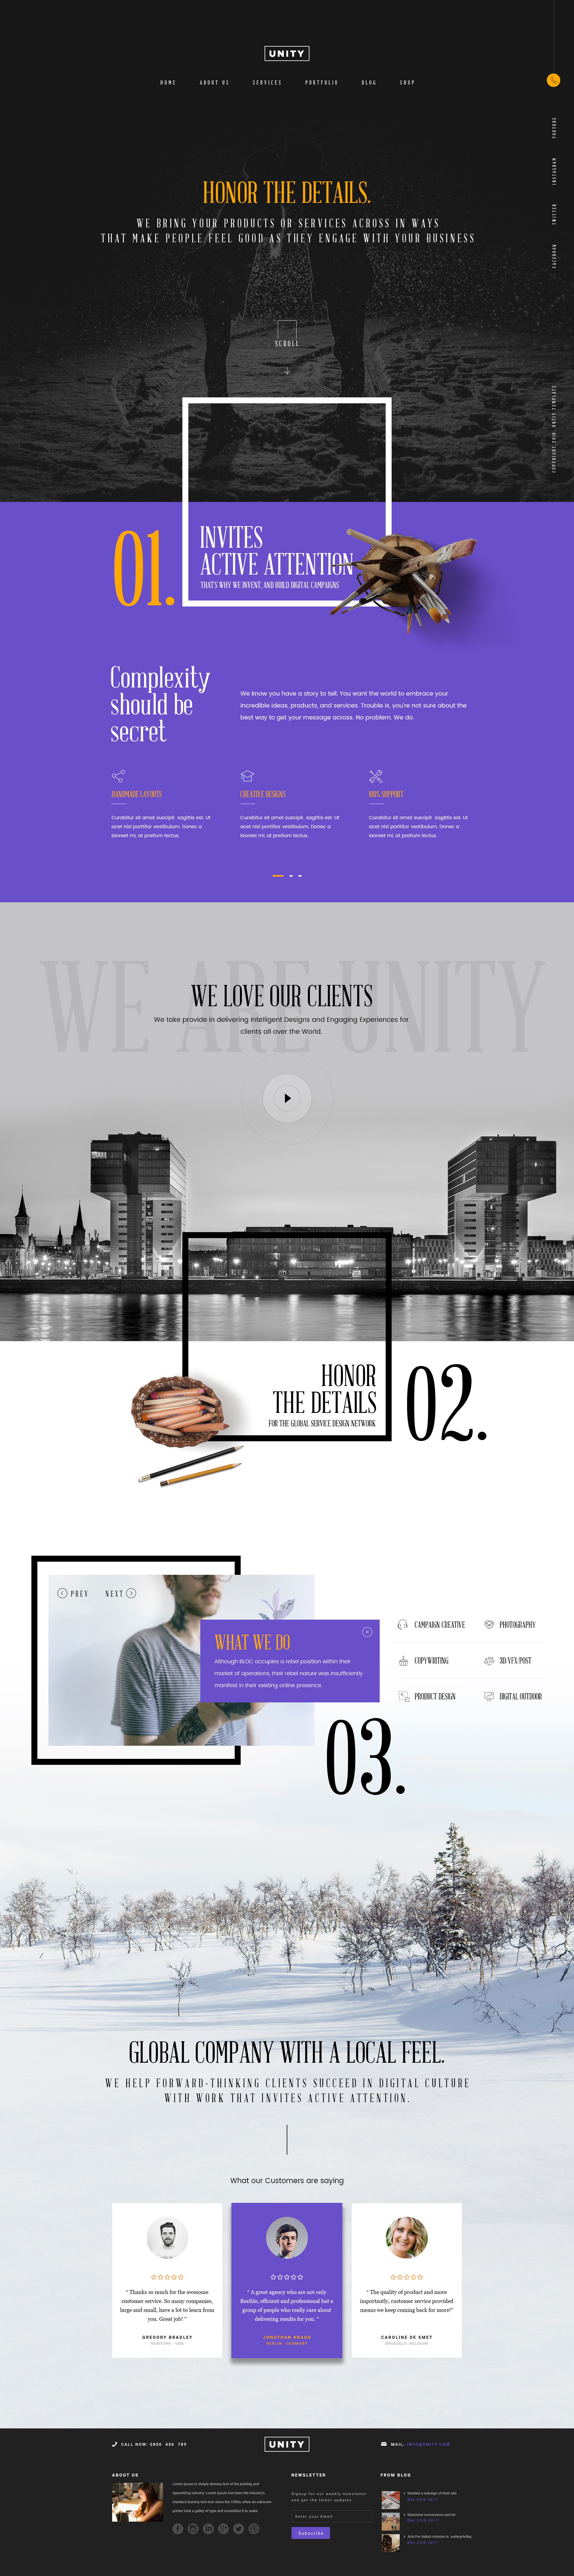 Honor - Unity Free Samples PSD | Website Templates | Pinterest ...